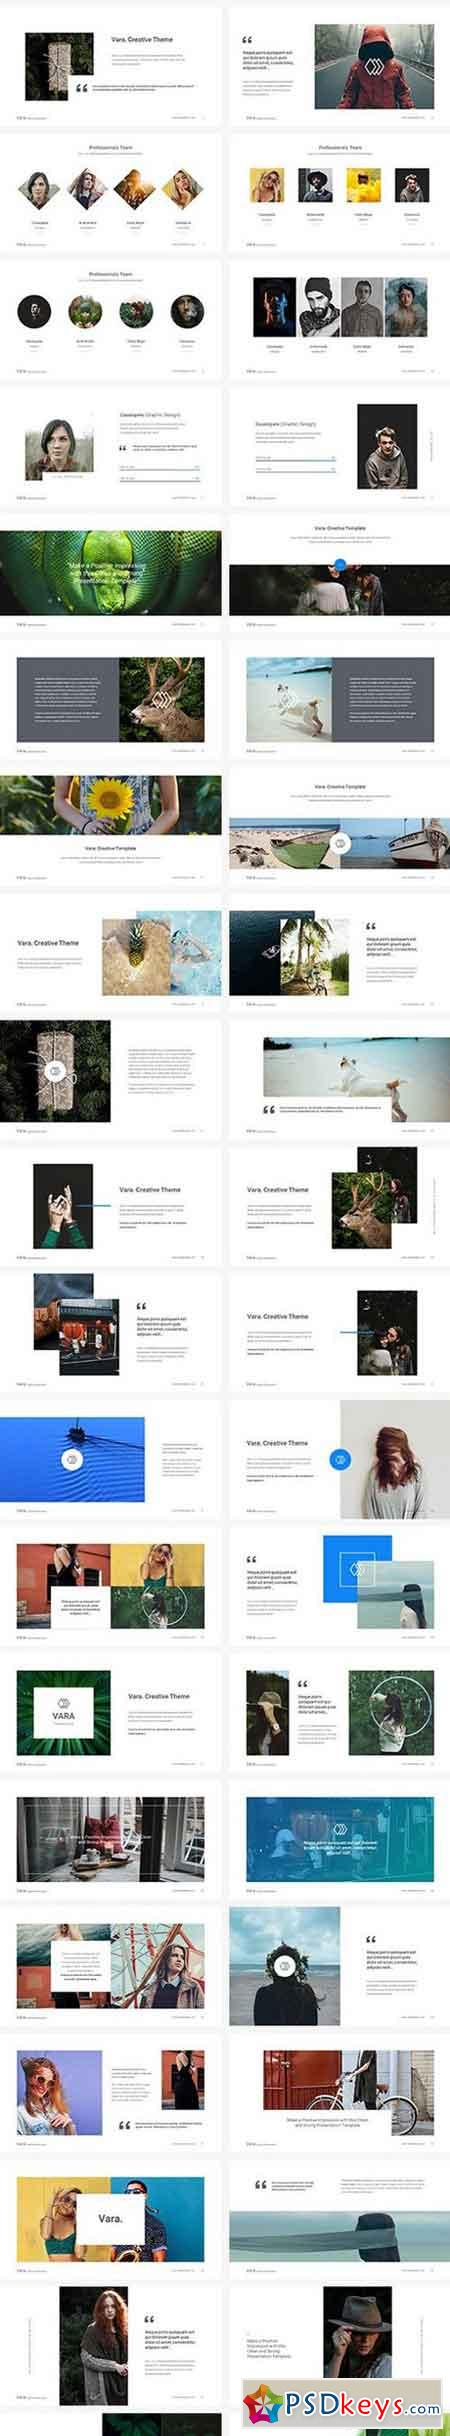 vara - creative keynote template 1698894 » free download photoshop, Powerpoint templates